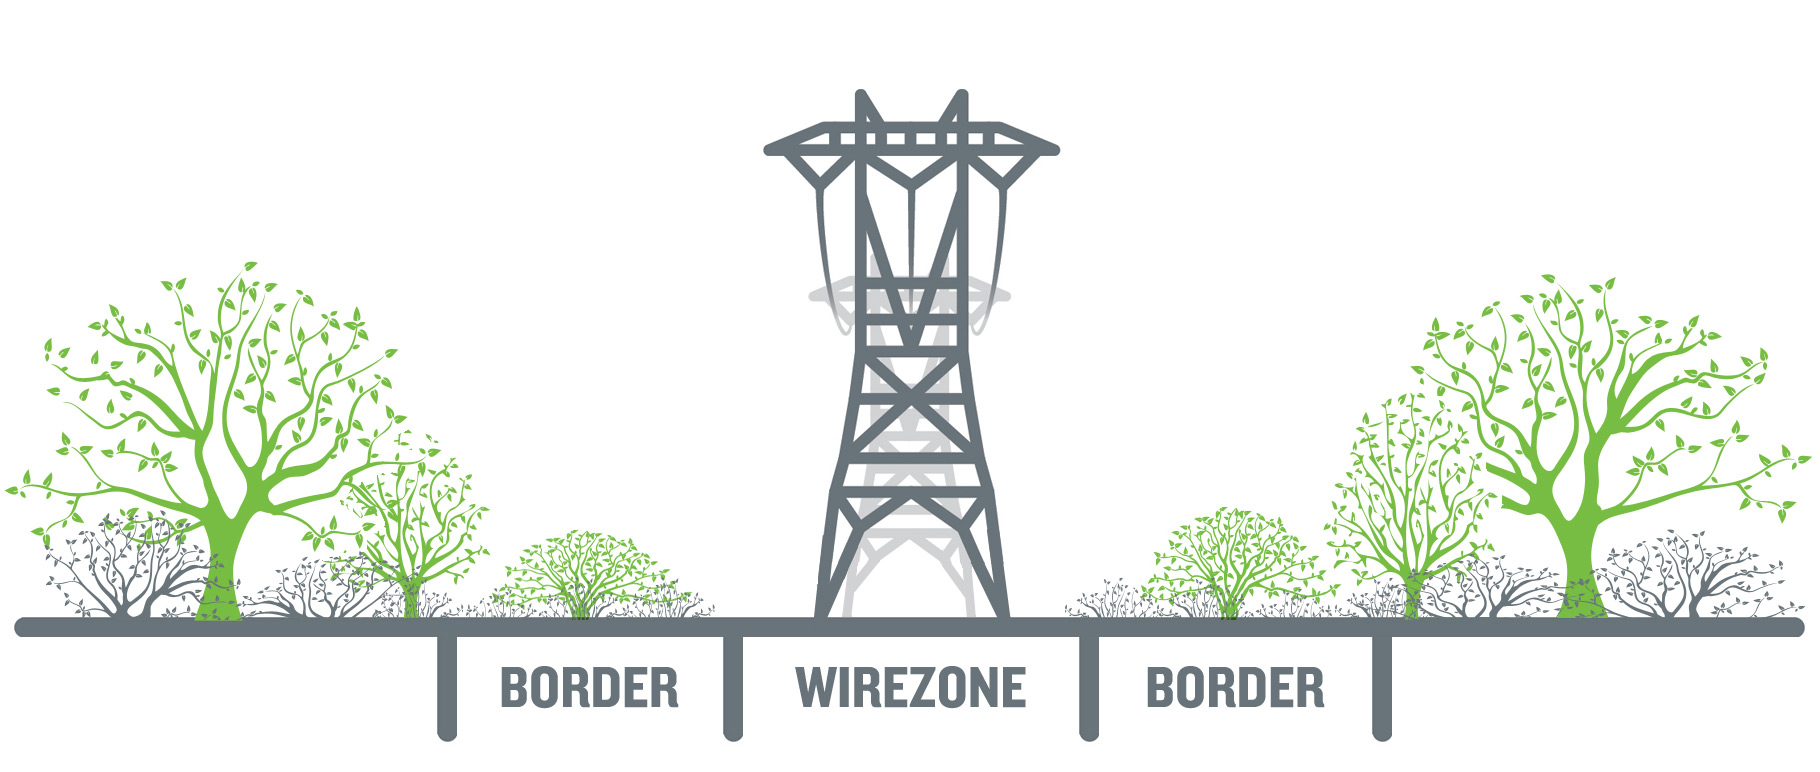 A vegetation border must be maintained on either side of the Wirezone below transmission lines.